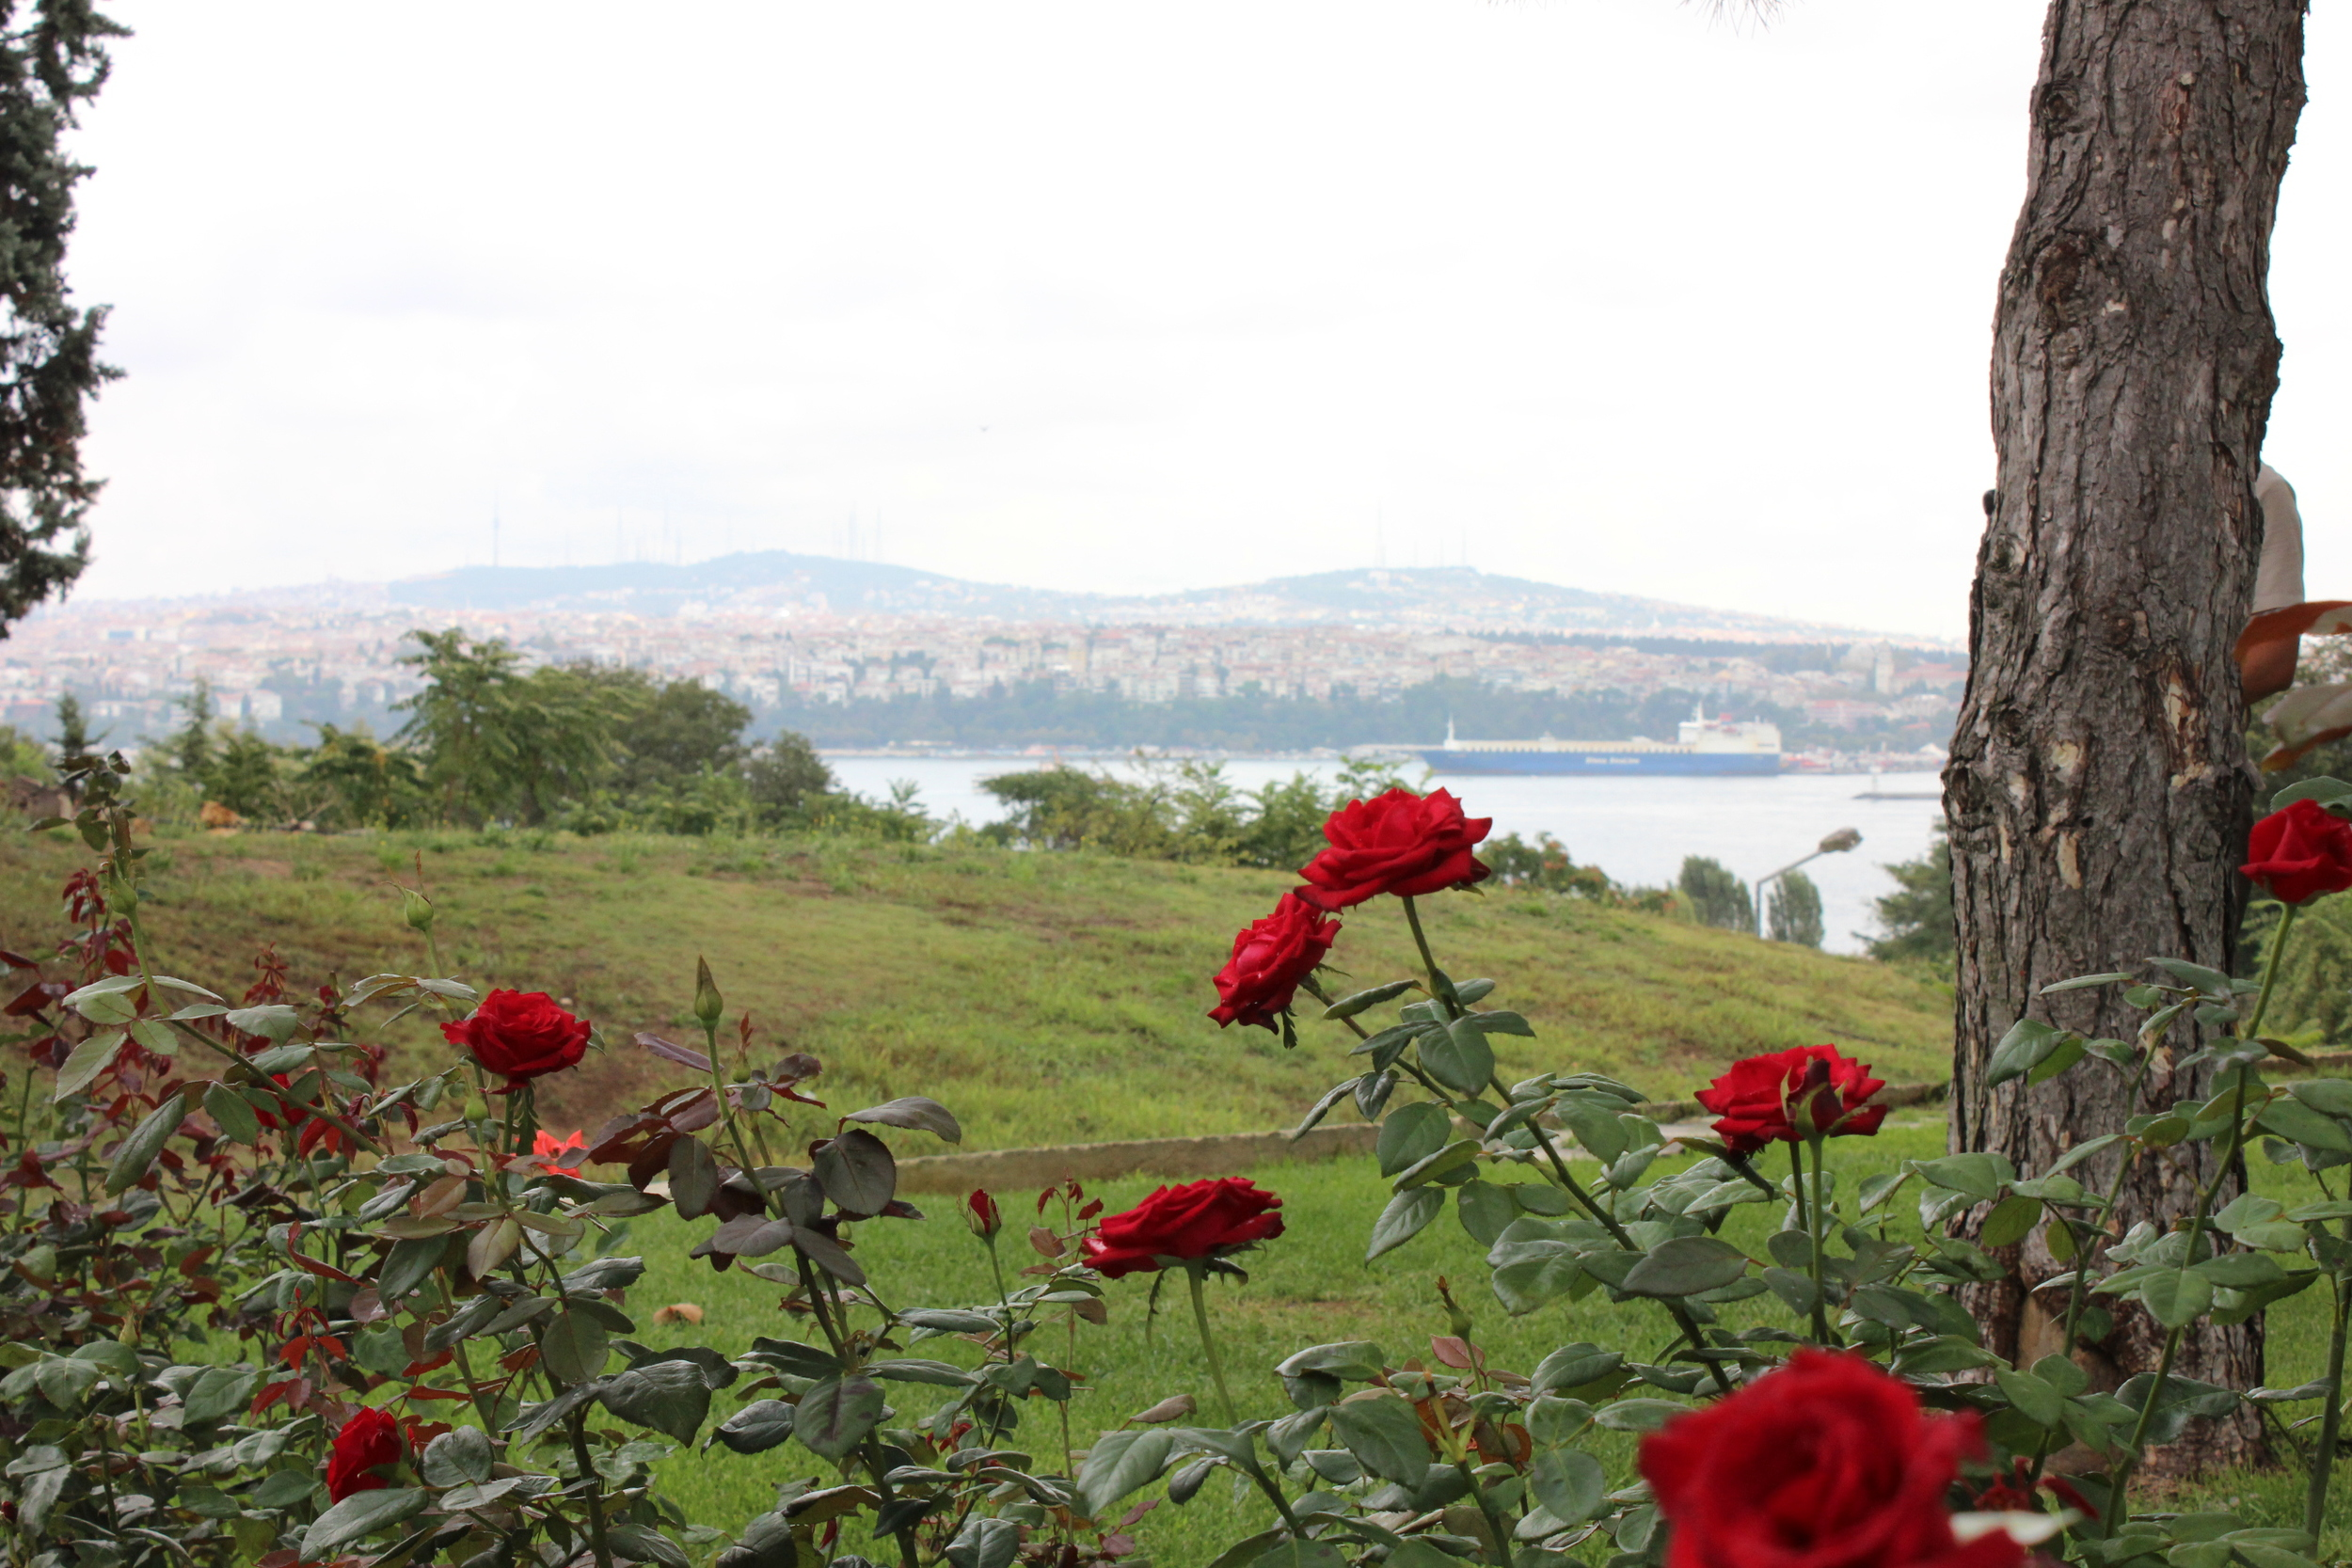 View of Bosphorous from Topkapi Palace